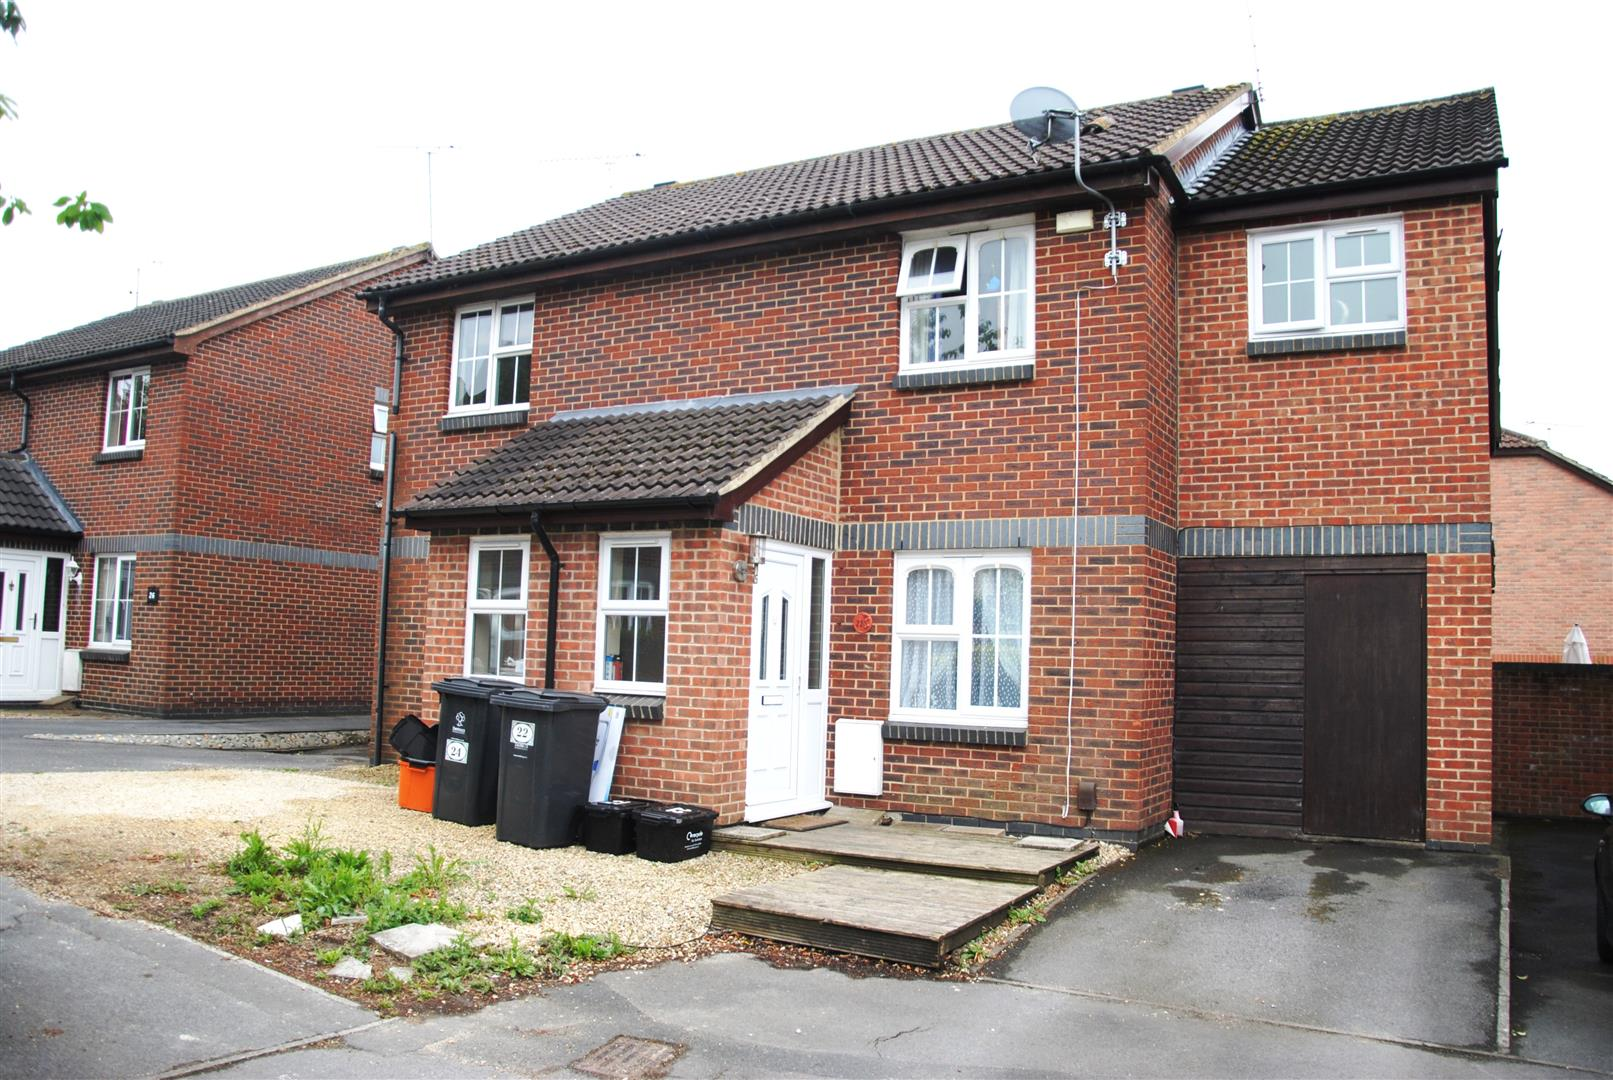 3 Bedrooms Semi Detached House for sale in Harvester Close, Middleleaze, Swindon